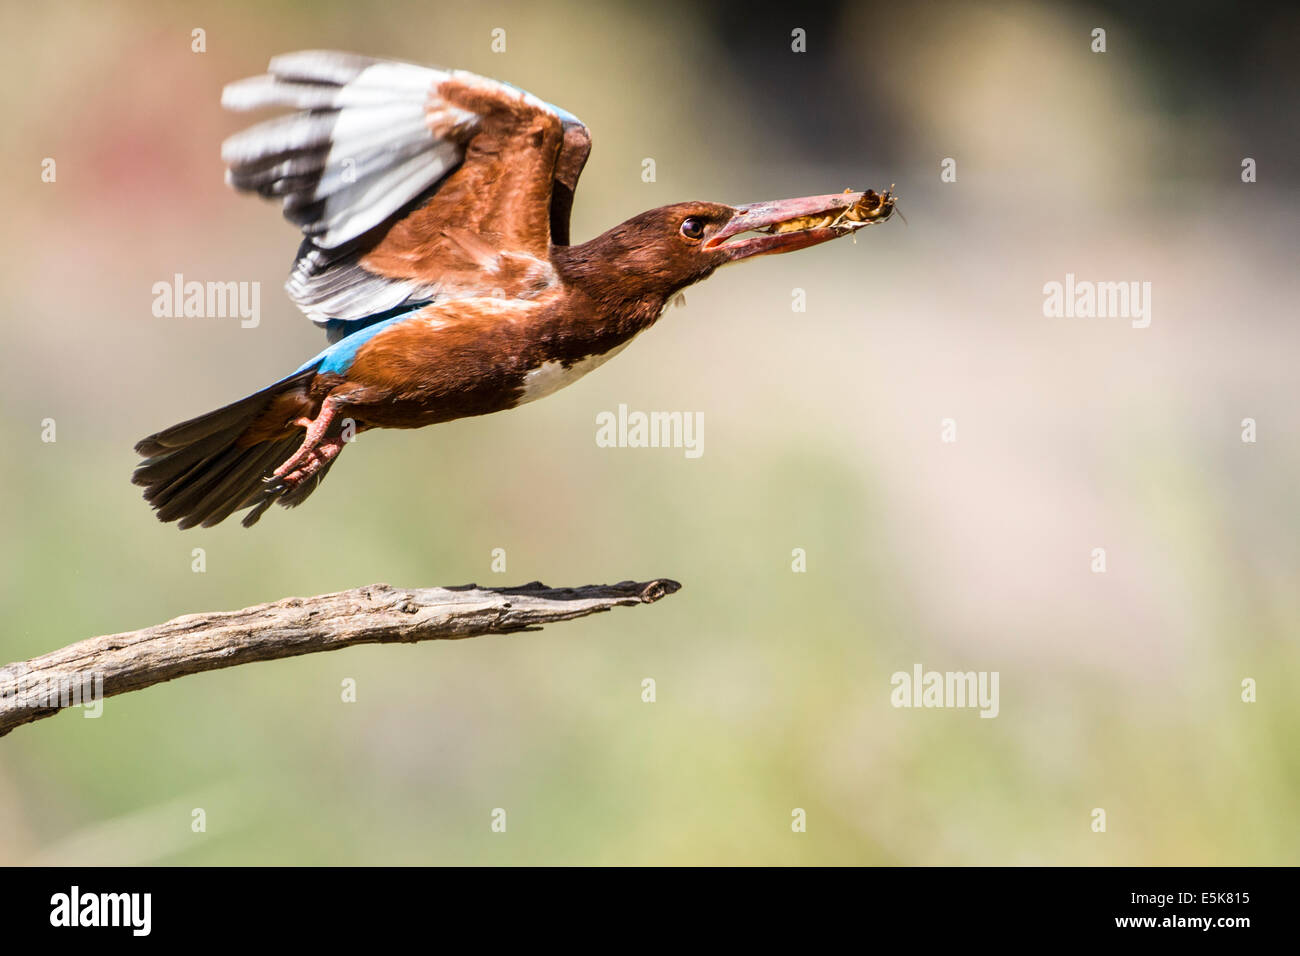 White-throated Kingfisher (Halcyon smyrnensis) with an insect in its beak, Photographed in Israel - Stock Image